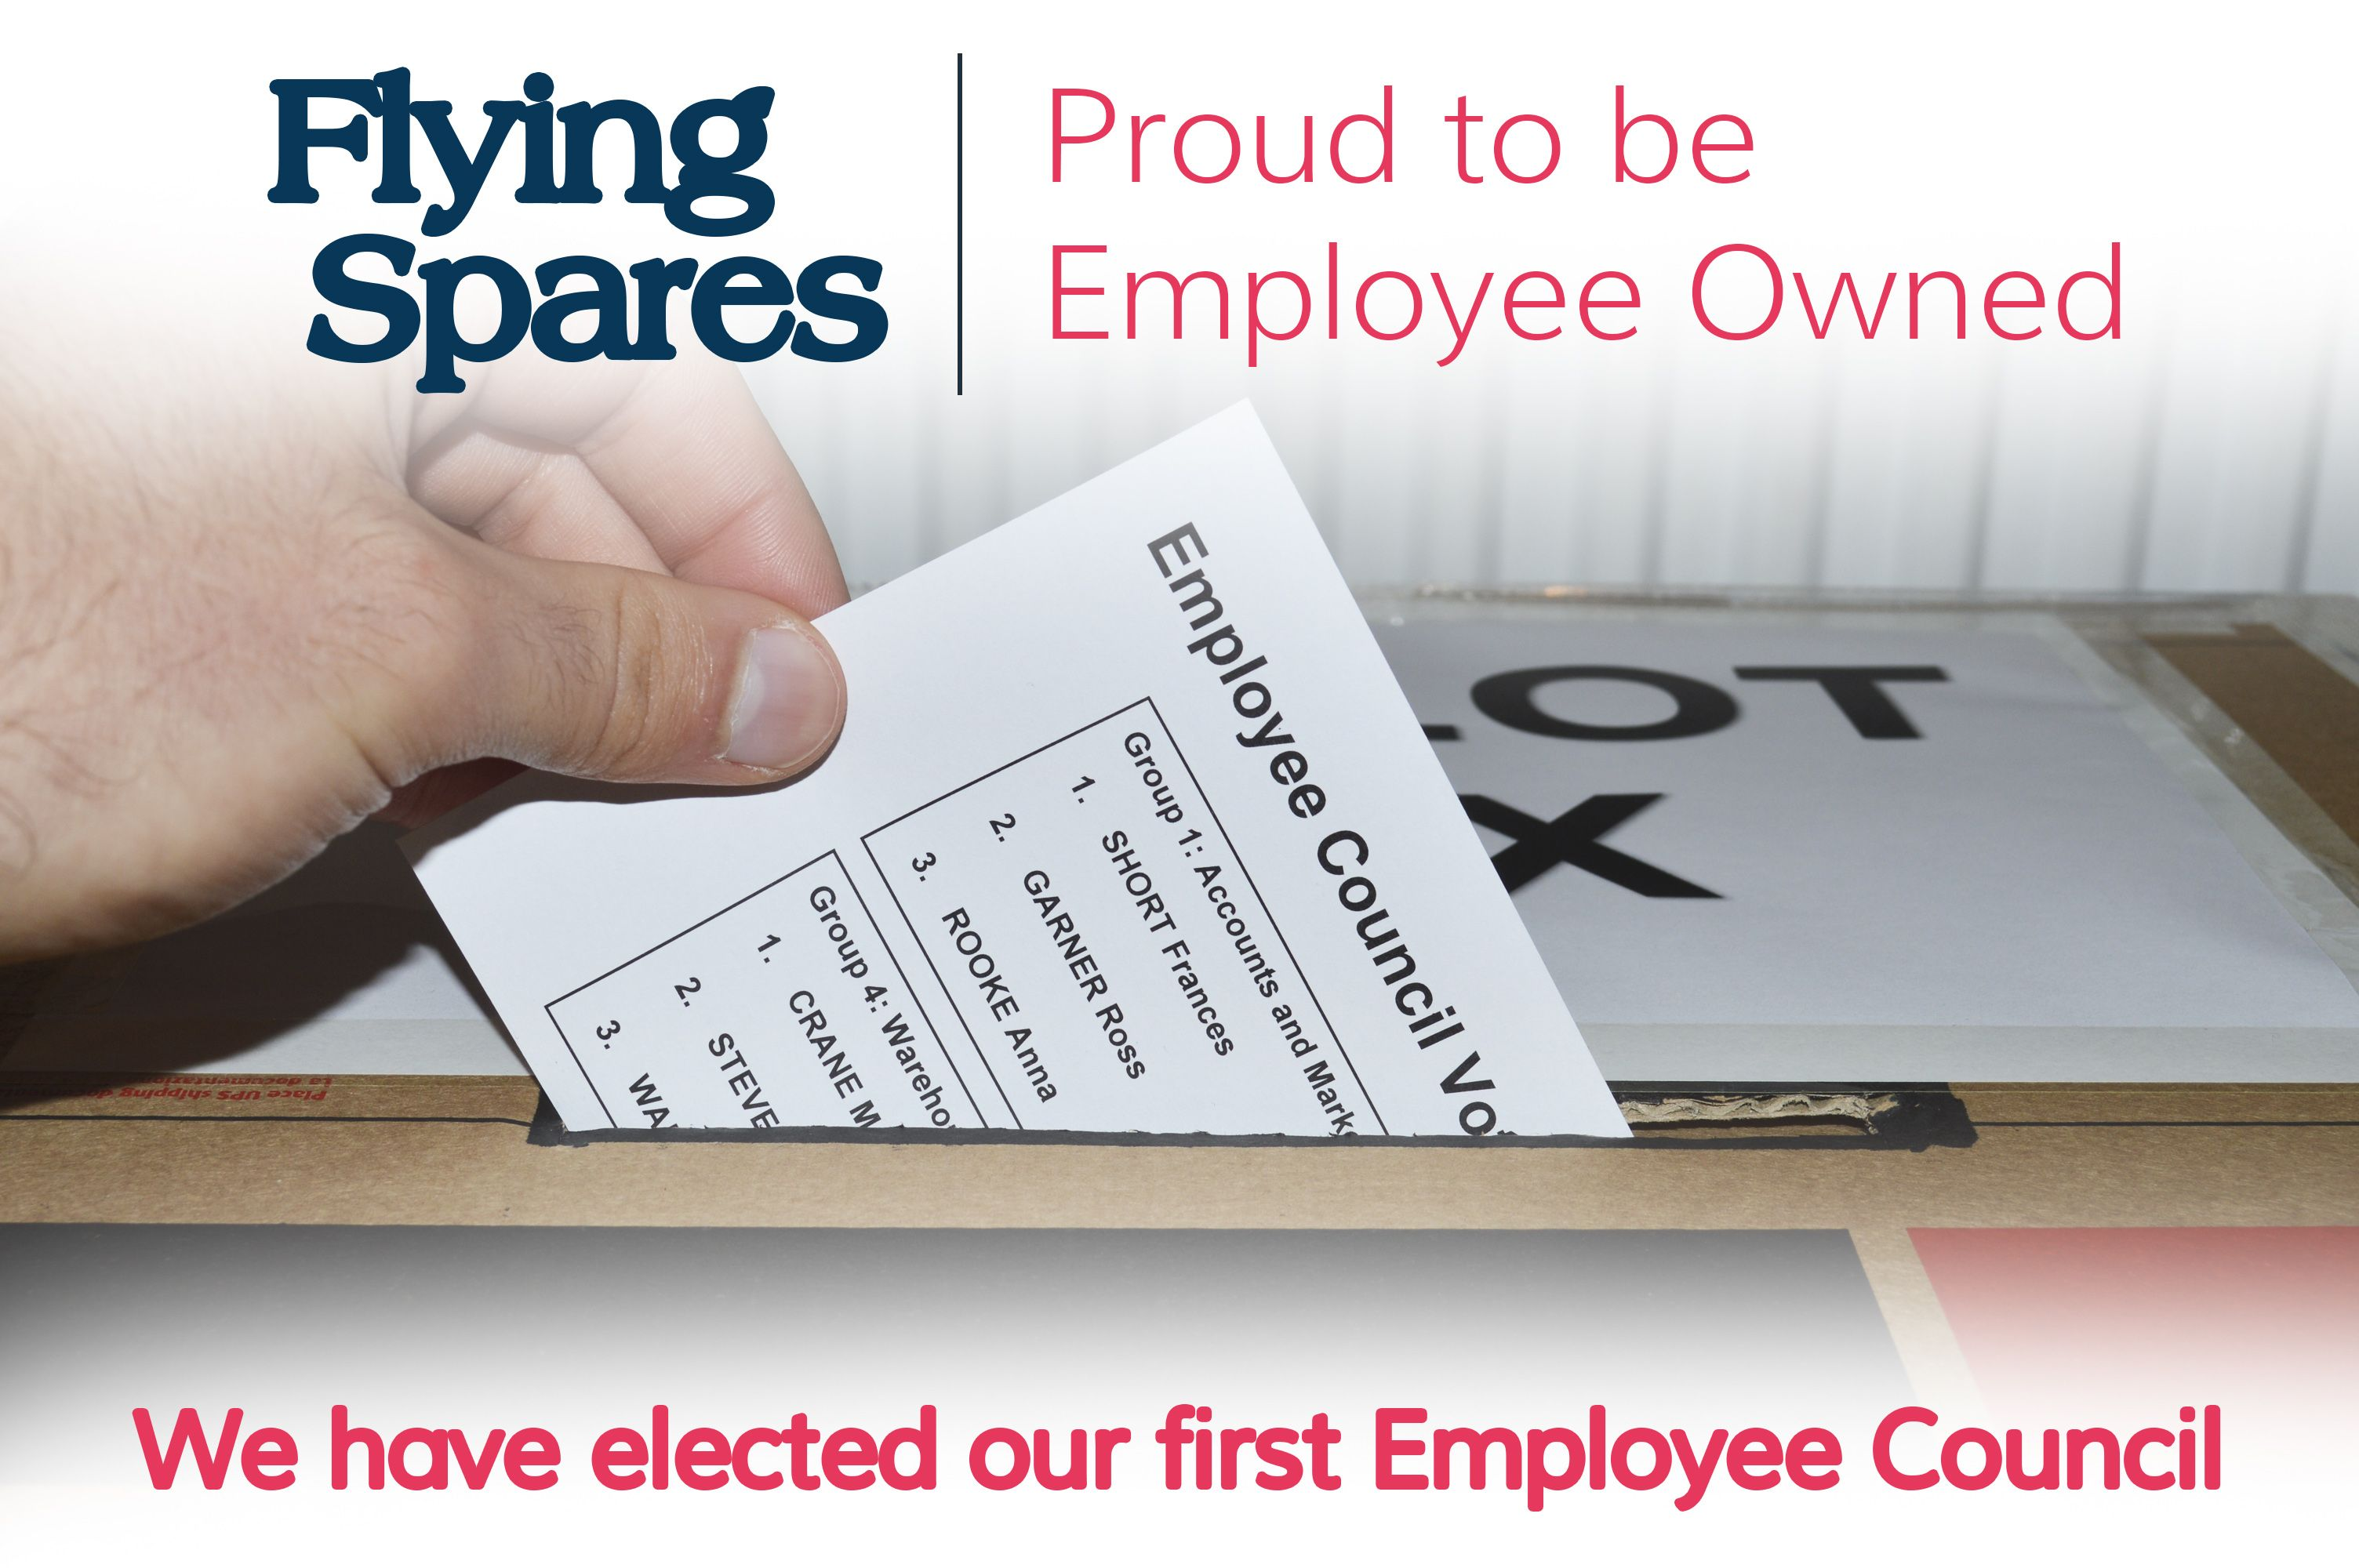 We have elected our first Employee Council